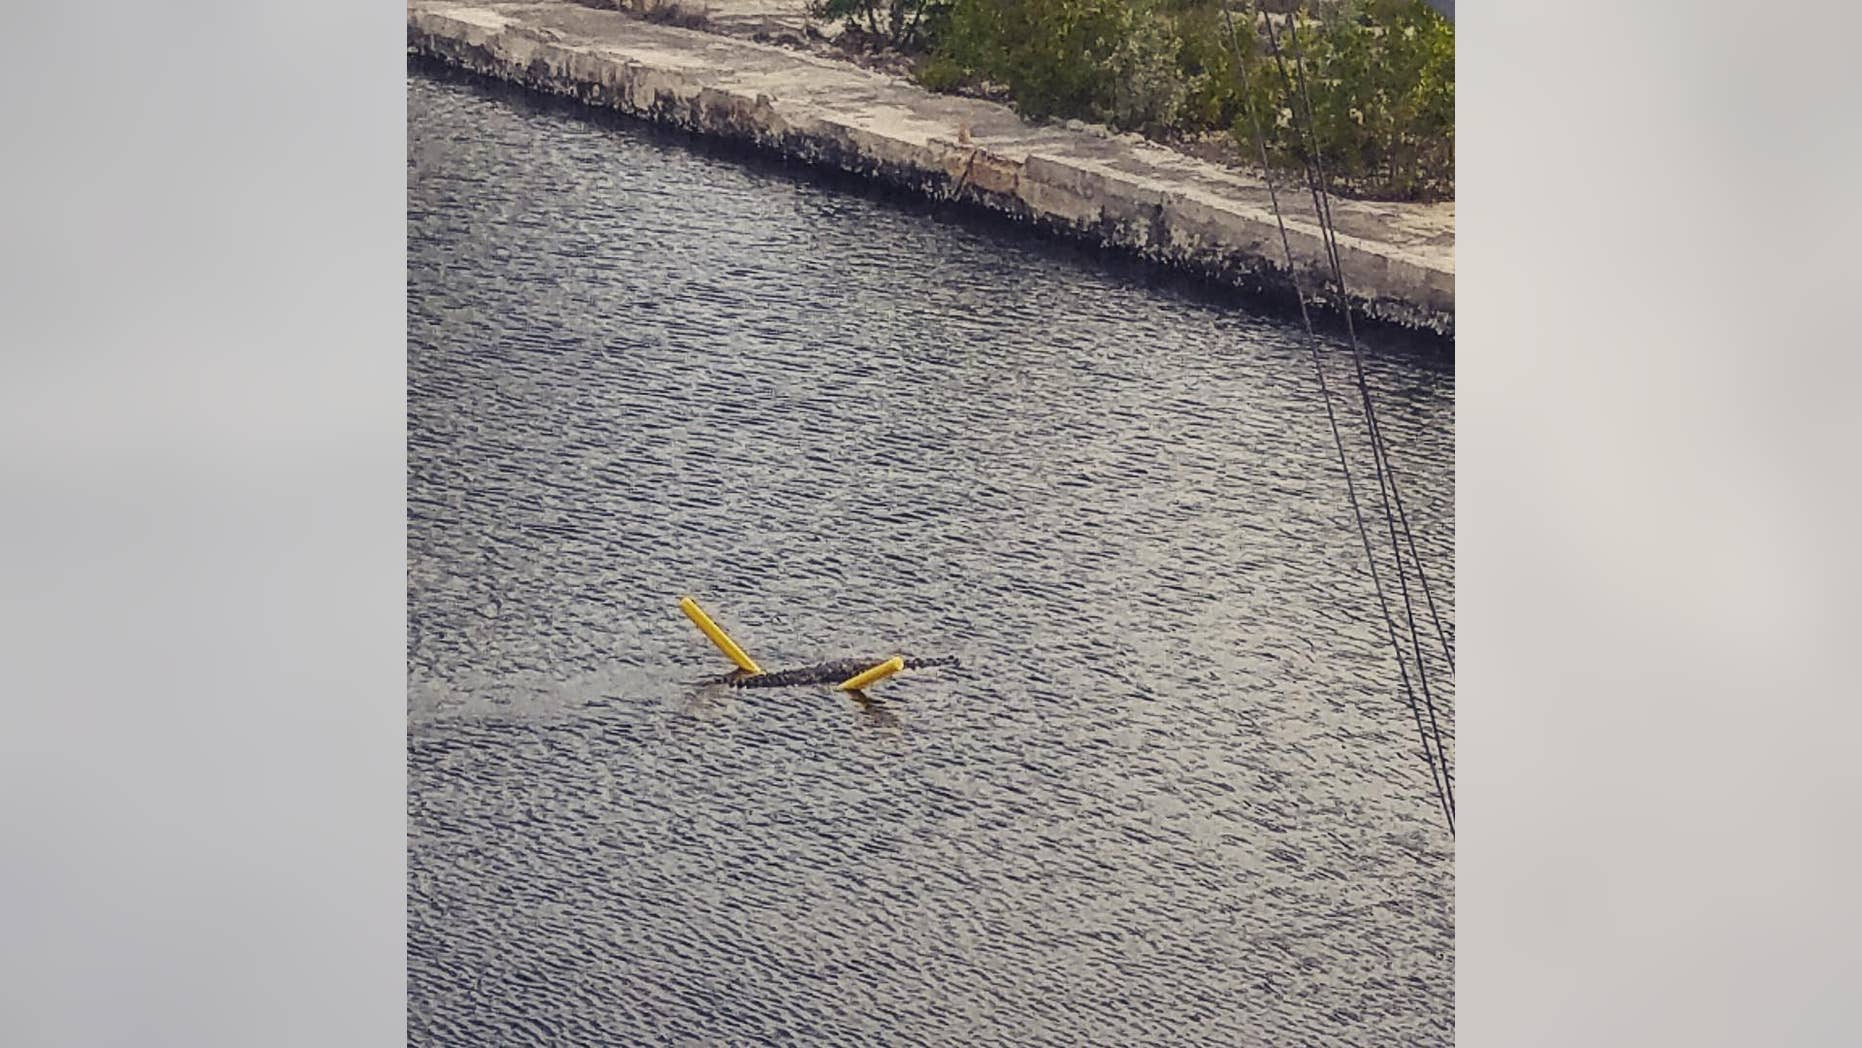 A crocodile floats on a yellow pool noodle across a canal in Key Largo, Florida, on Aug. 6, 2018.